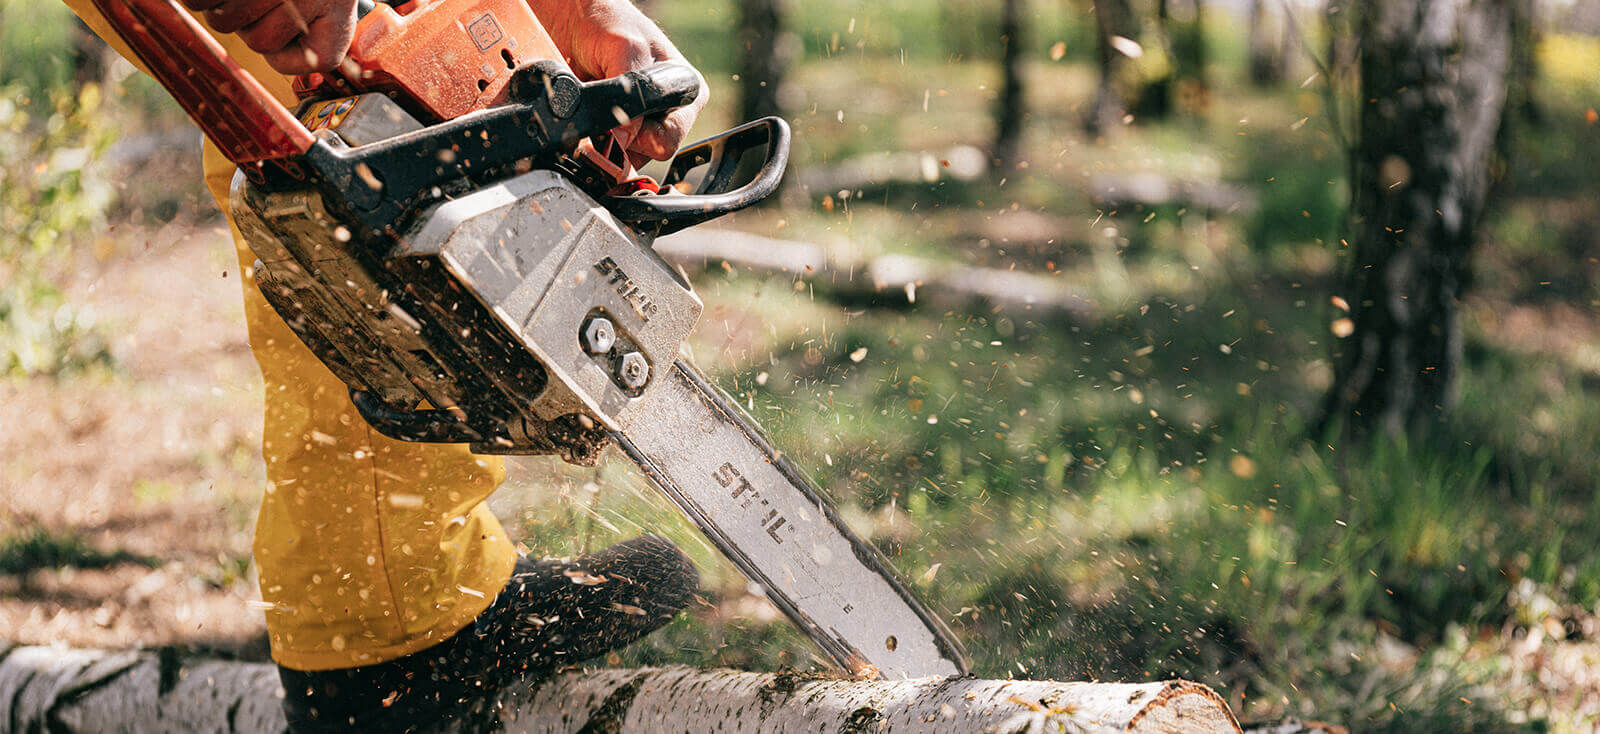 10 Best Cordless Chainsaw 2021